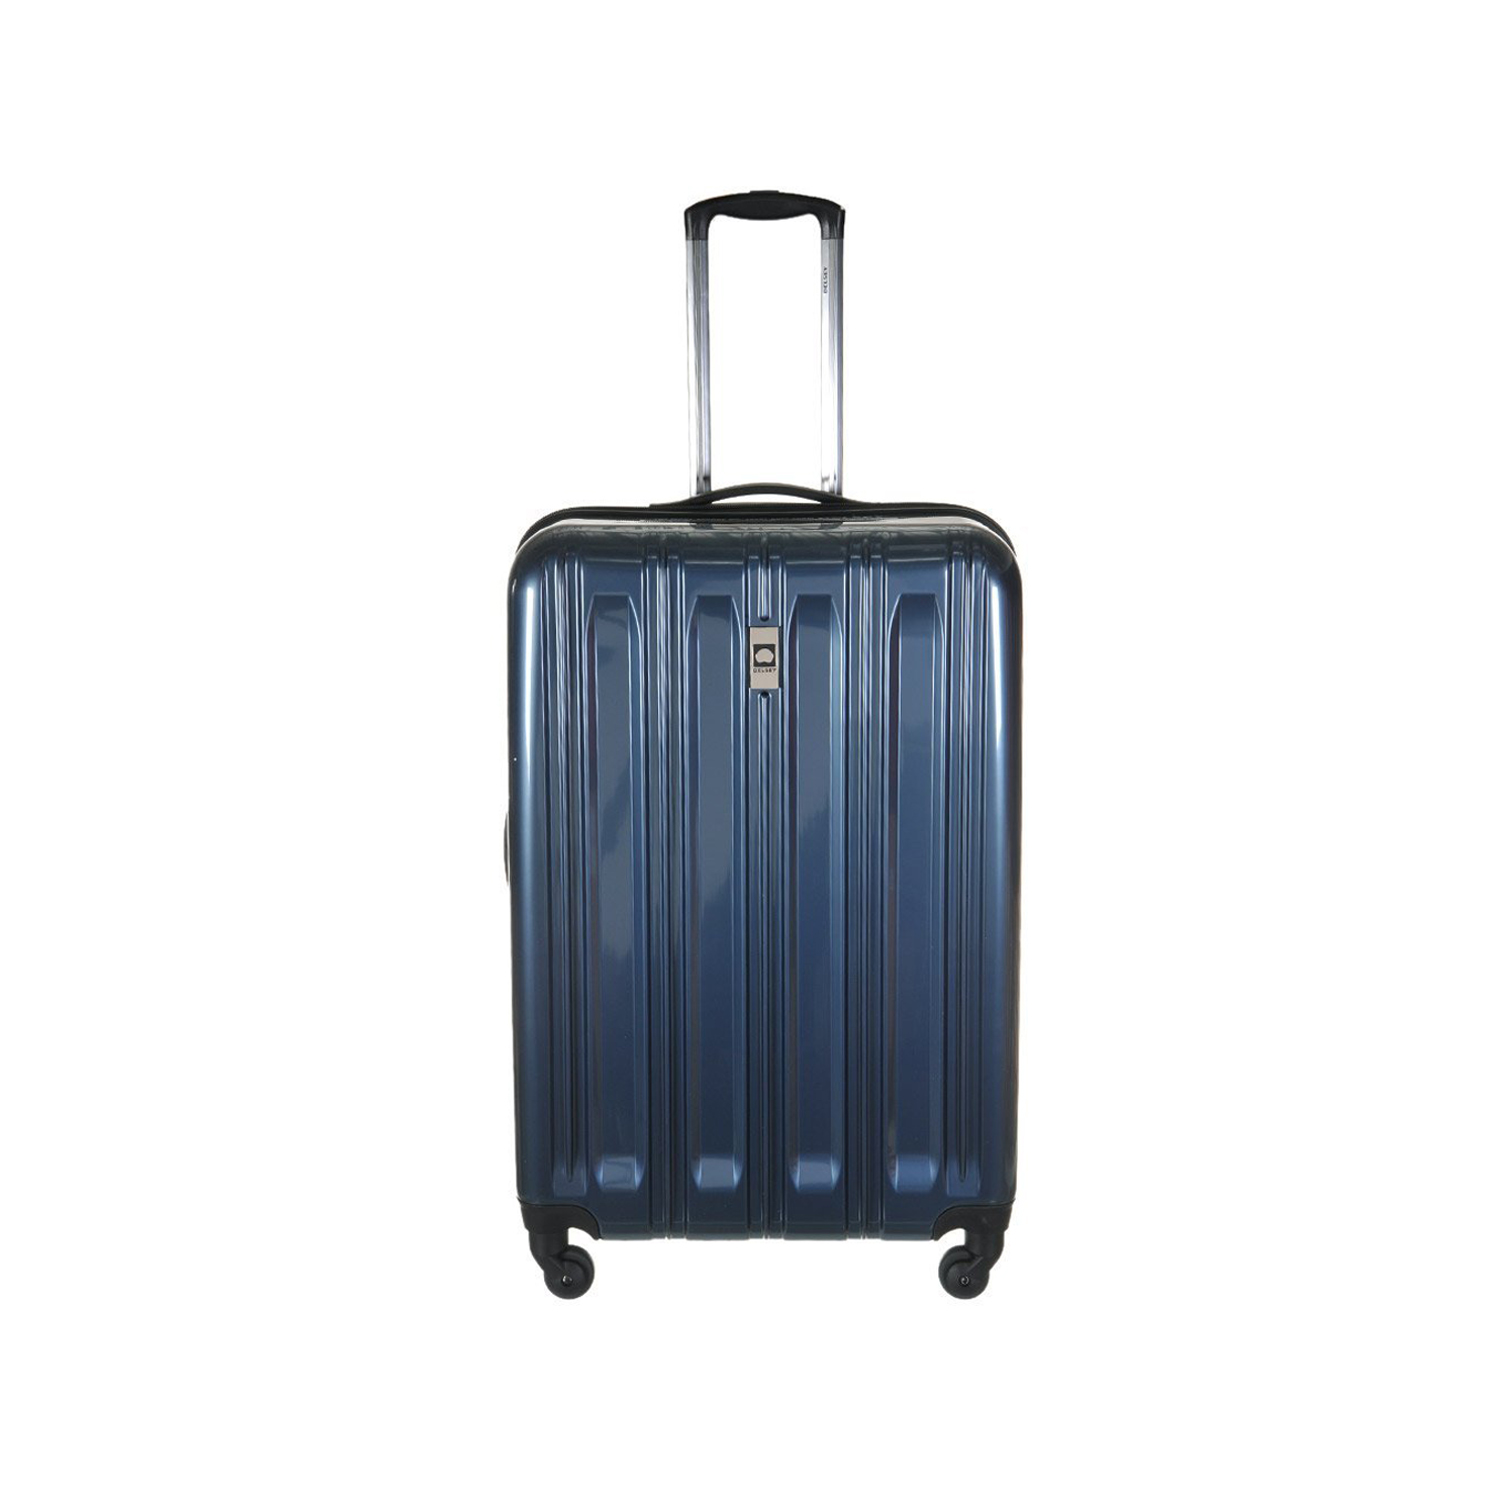 Delsey Valise rigide Air Longitude 2 67.5 cm